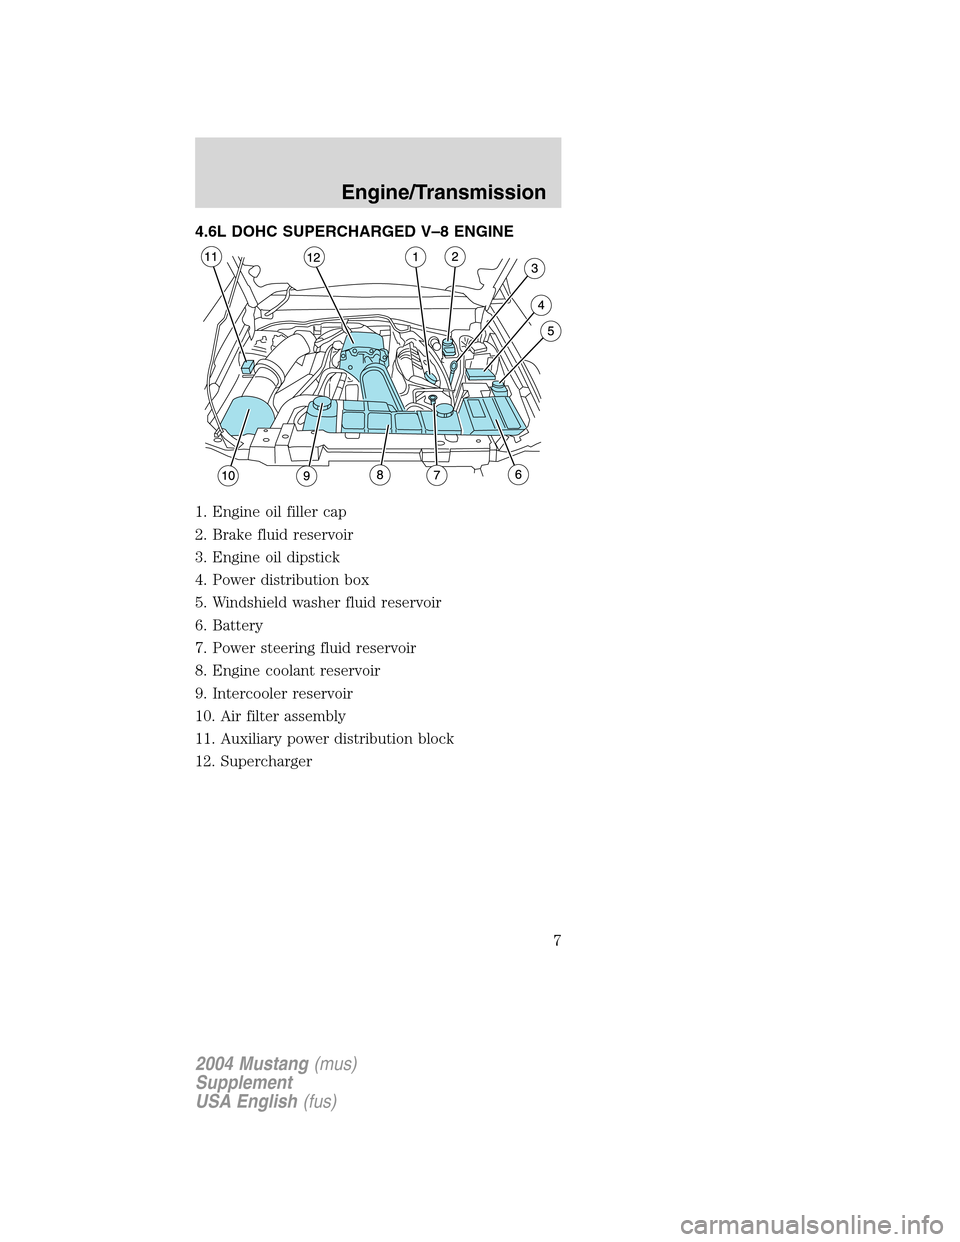 Ford Mustang 2004 4g Svt Supplement Manual 4 6 Engine Diagram